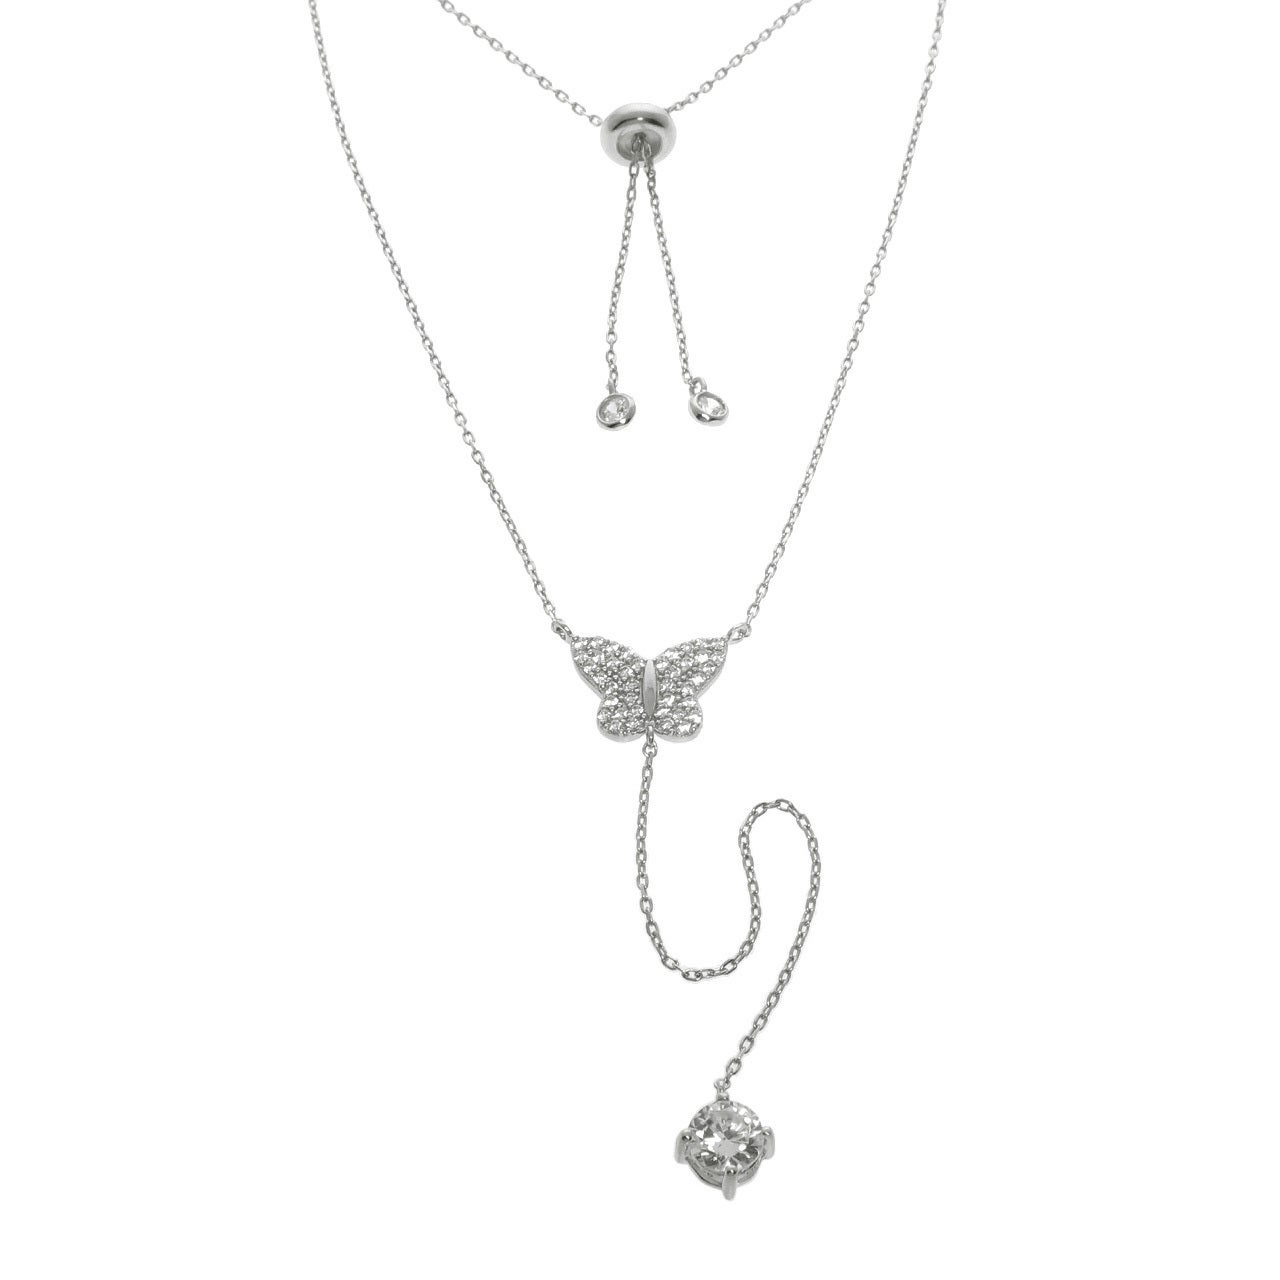 Eternally Haute Solid Sterling Silver Pave Butterfly Y Necklace Pertaining To Most Up To Date Sparkling Butterfly Y  Necklaces (View 13 of 25)